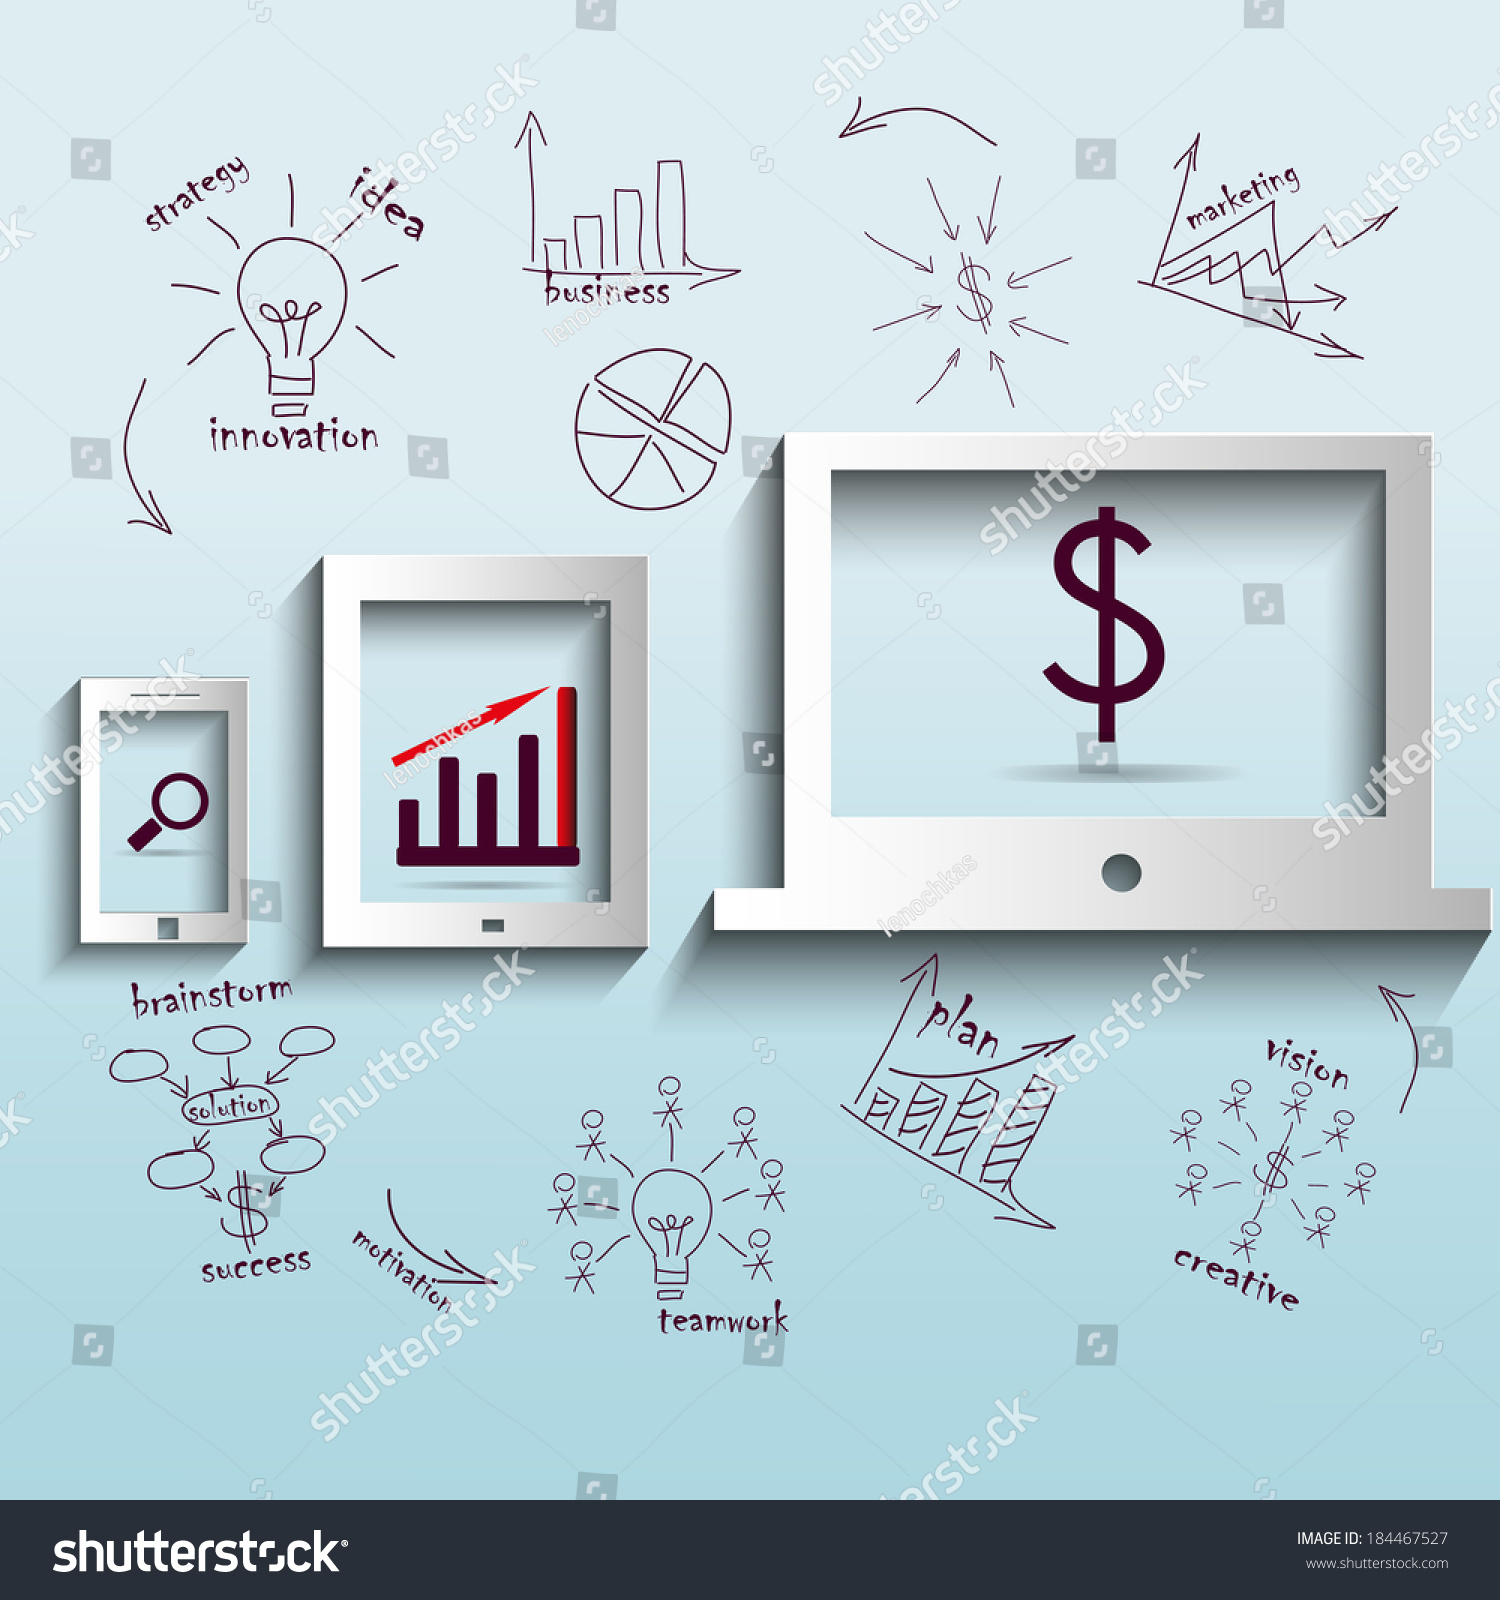 Computer Drawing Business Plan Concept Ideas Stock Vector Royalty